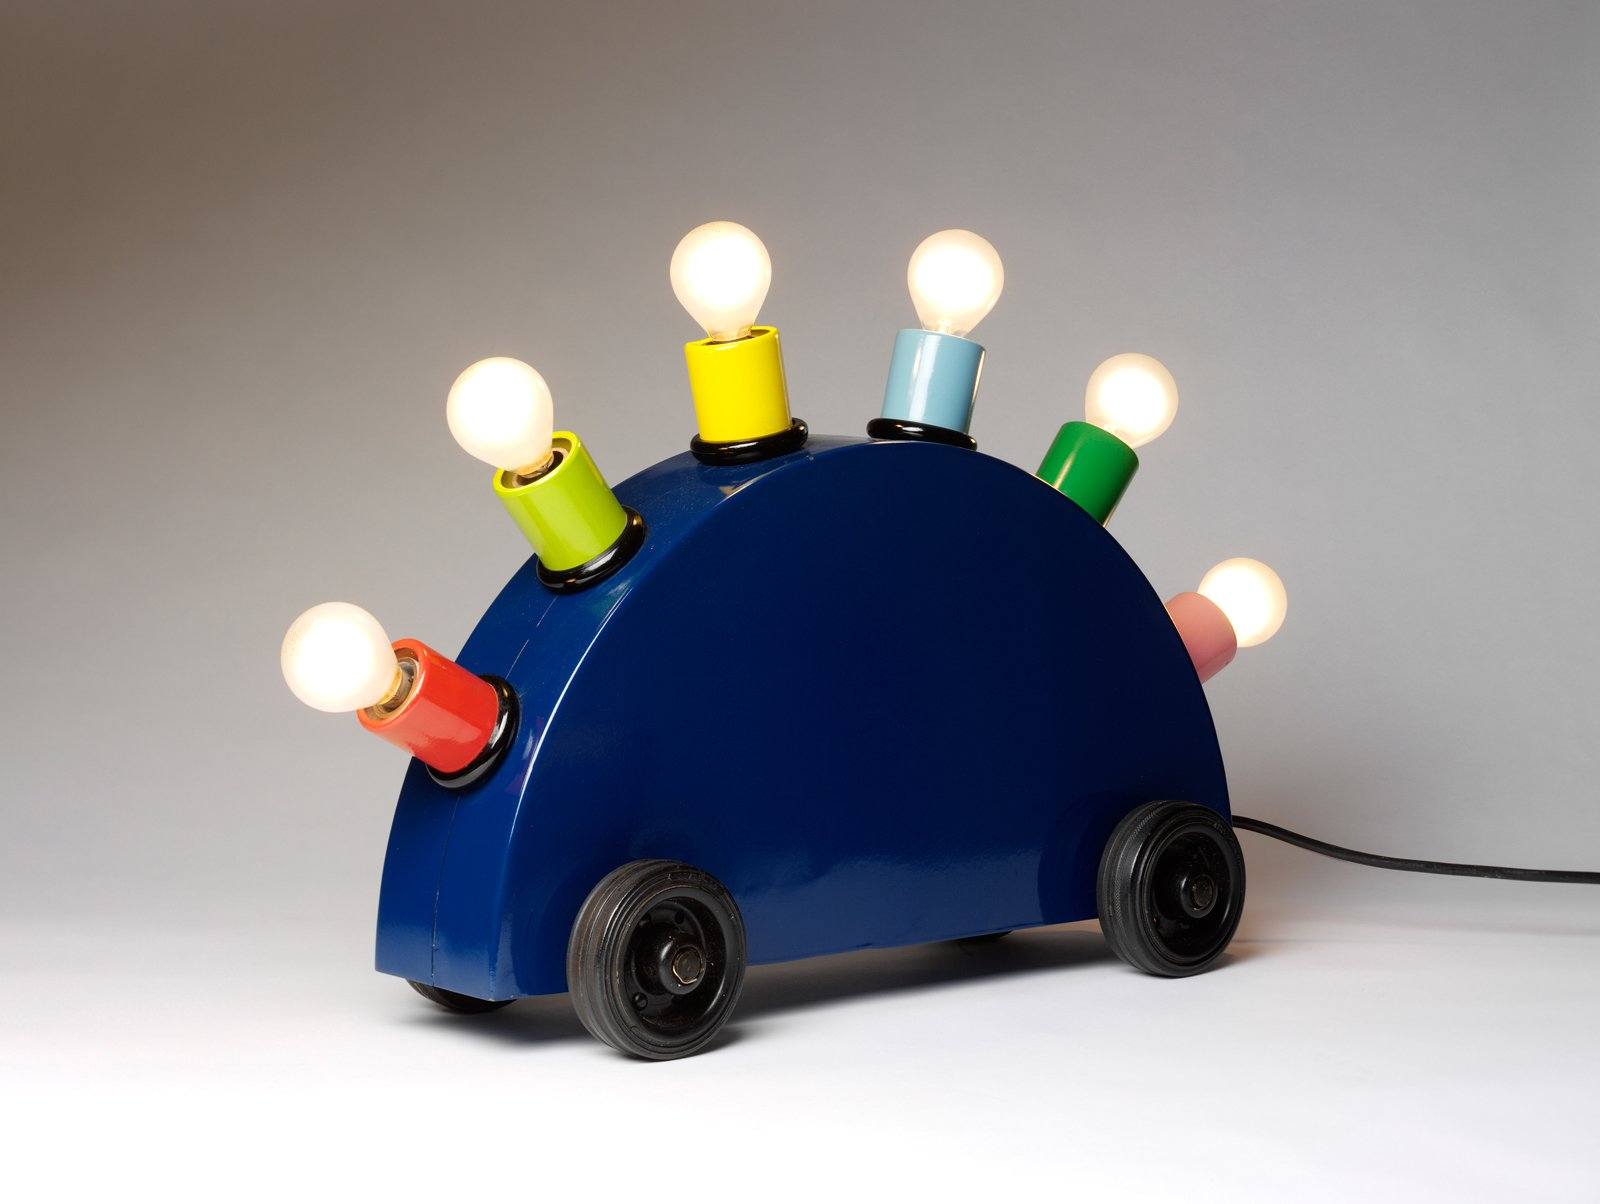 """""""Super Lamp"""" Martine Bedin. © V&A Images. Painted metal, lighting components.  60+ Modern Lighting Solutions by Dwell from """"Postmodernism"""" at the V&A Museum"""